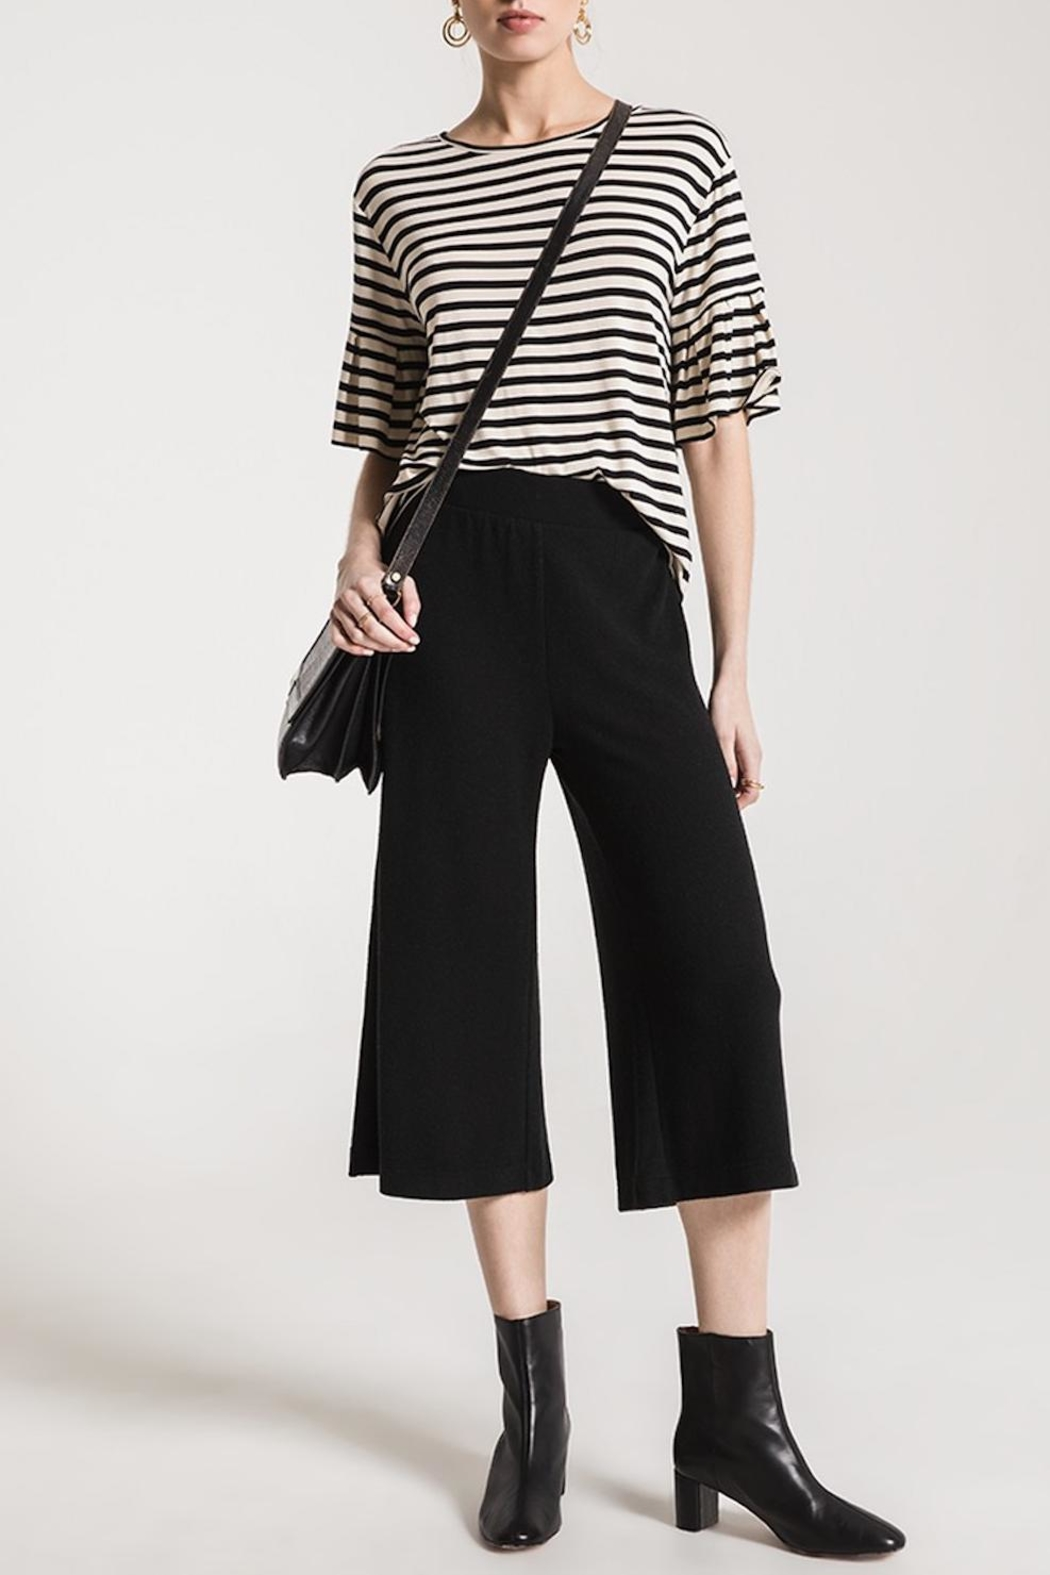 z supply Soft Knit Culottes - Main Image